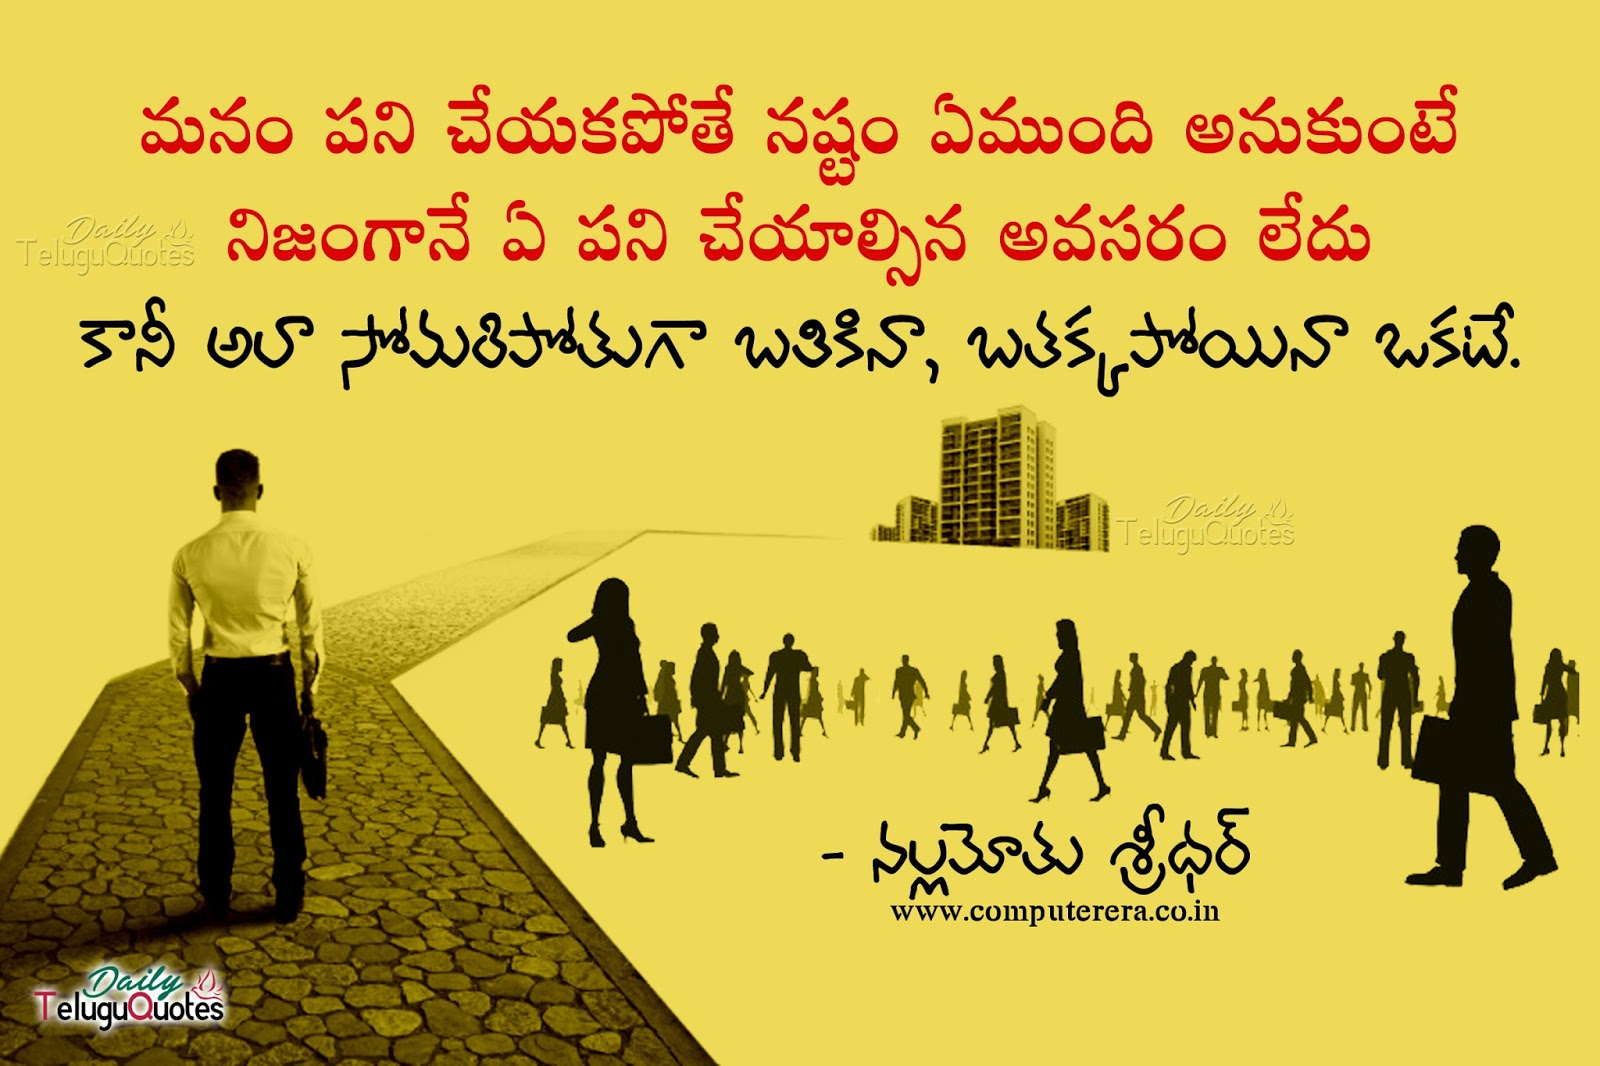 Motivational Words Nallamothu Sridhar Telugu Motivational Words And Messages